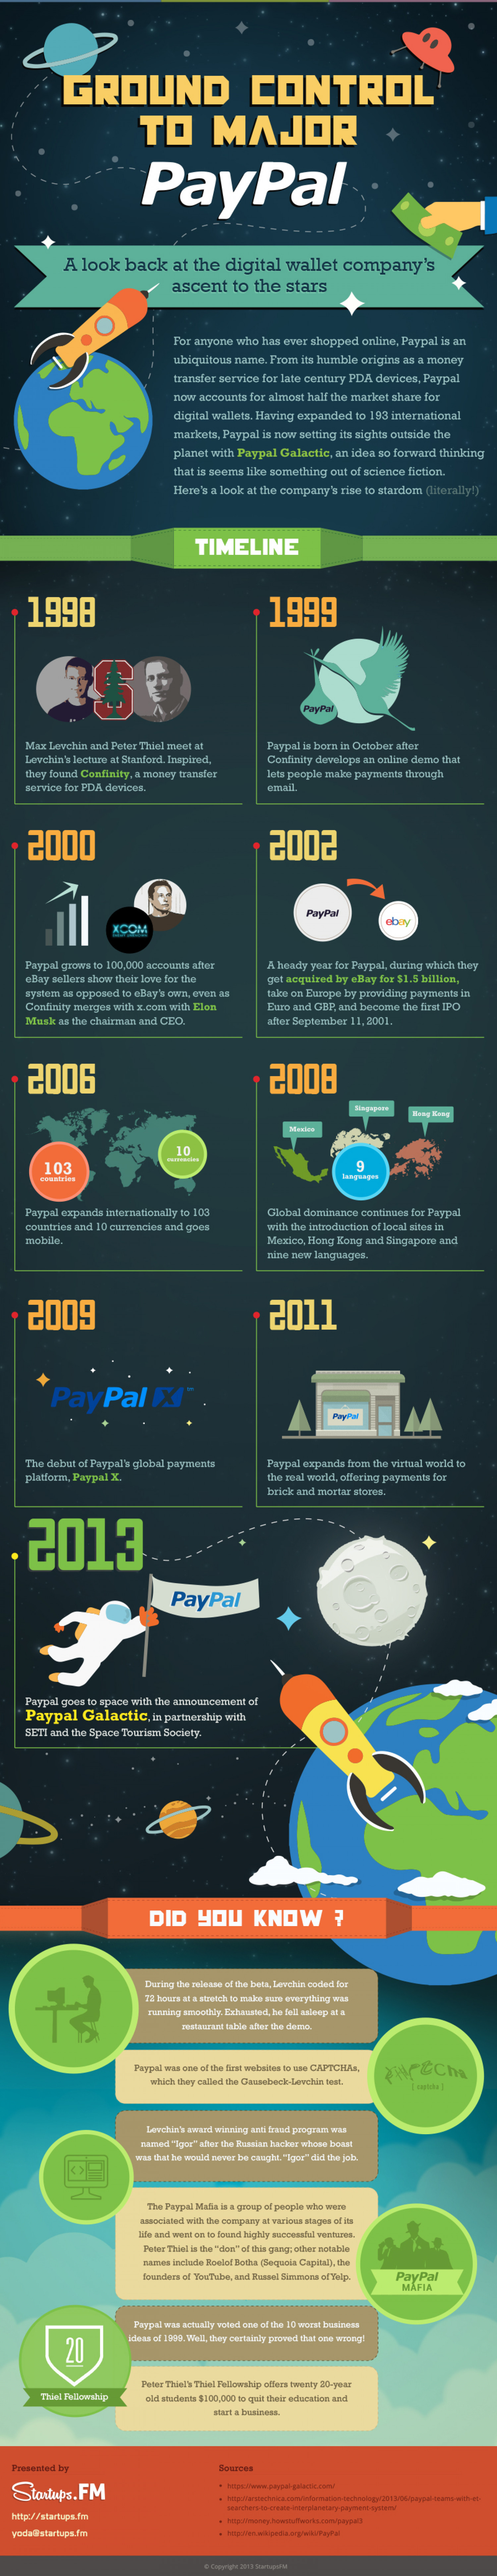 PayPal goes into space Infographic